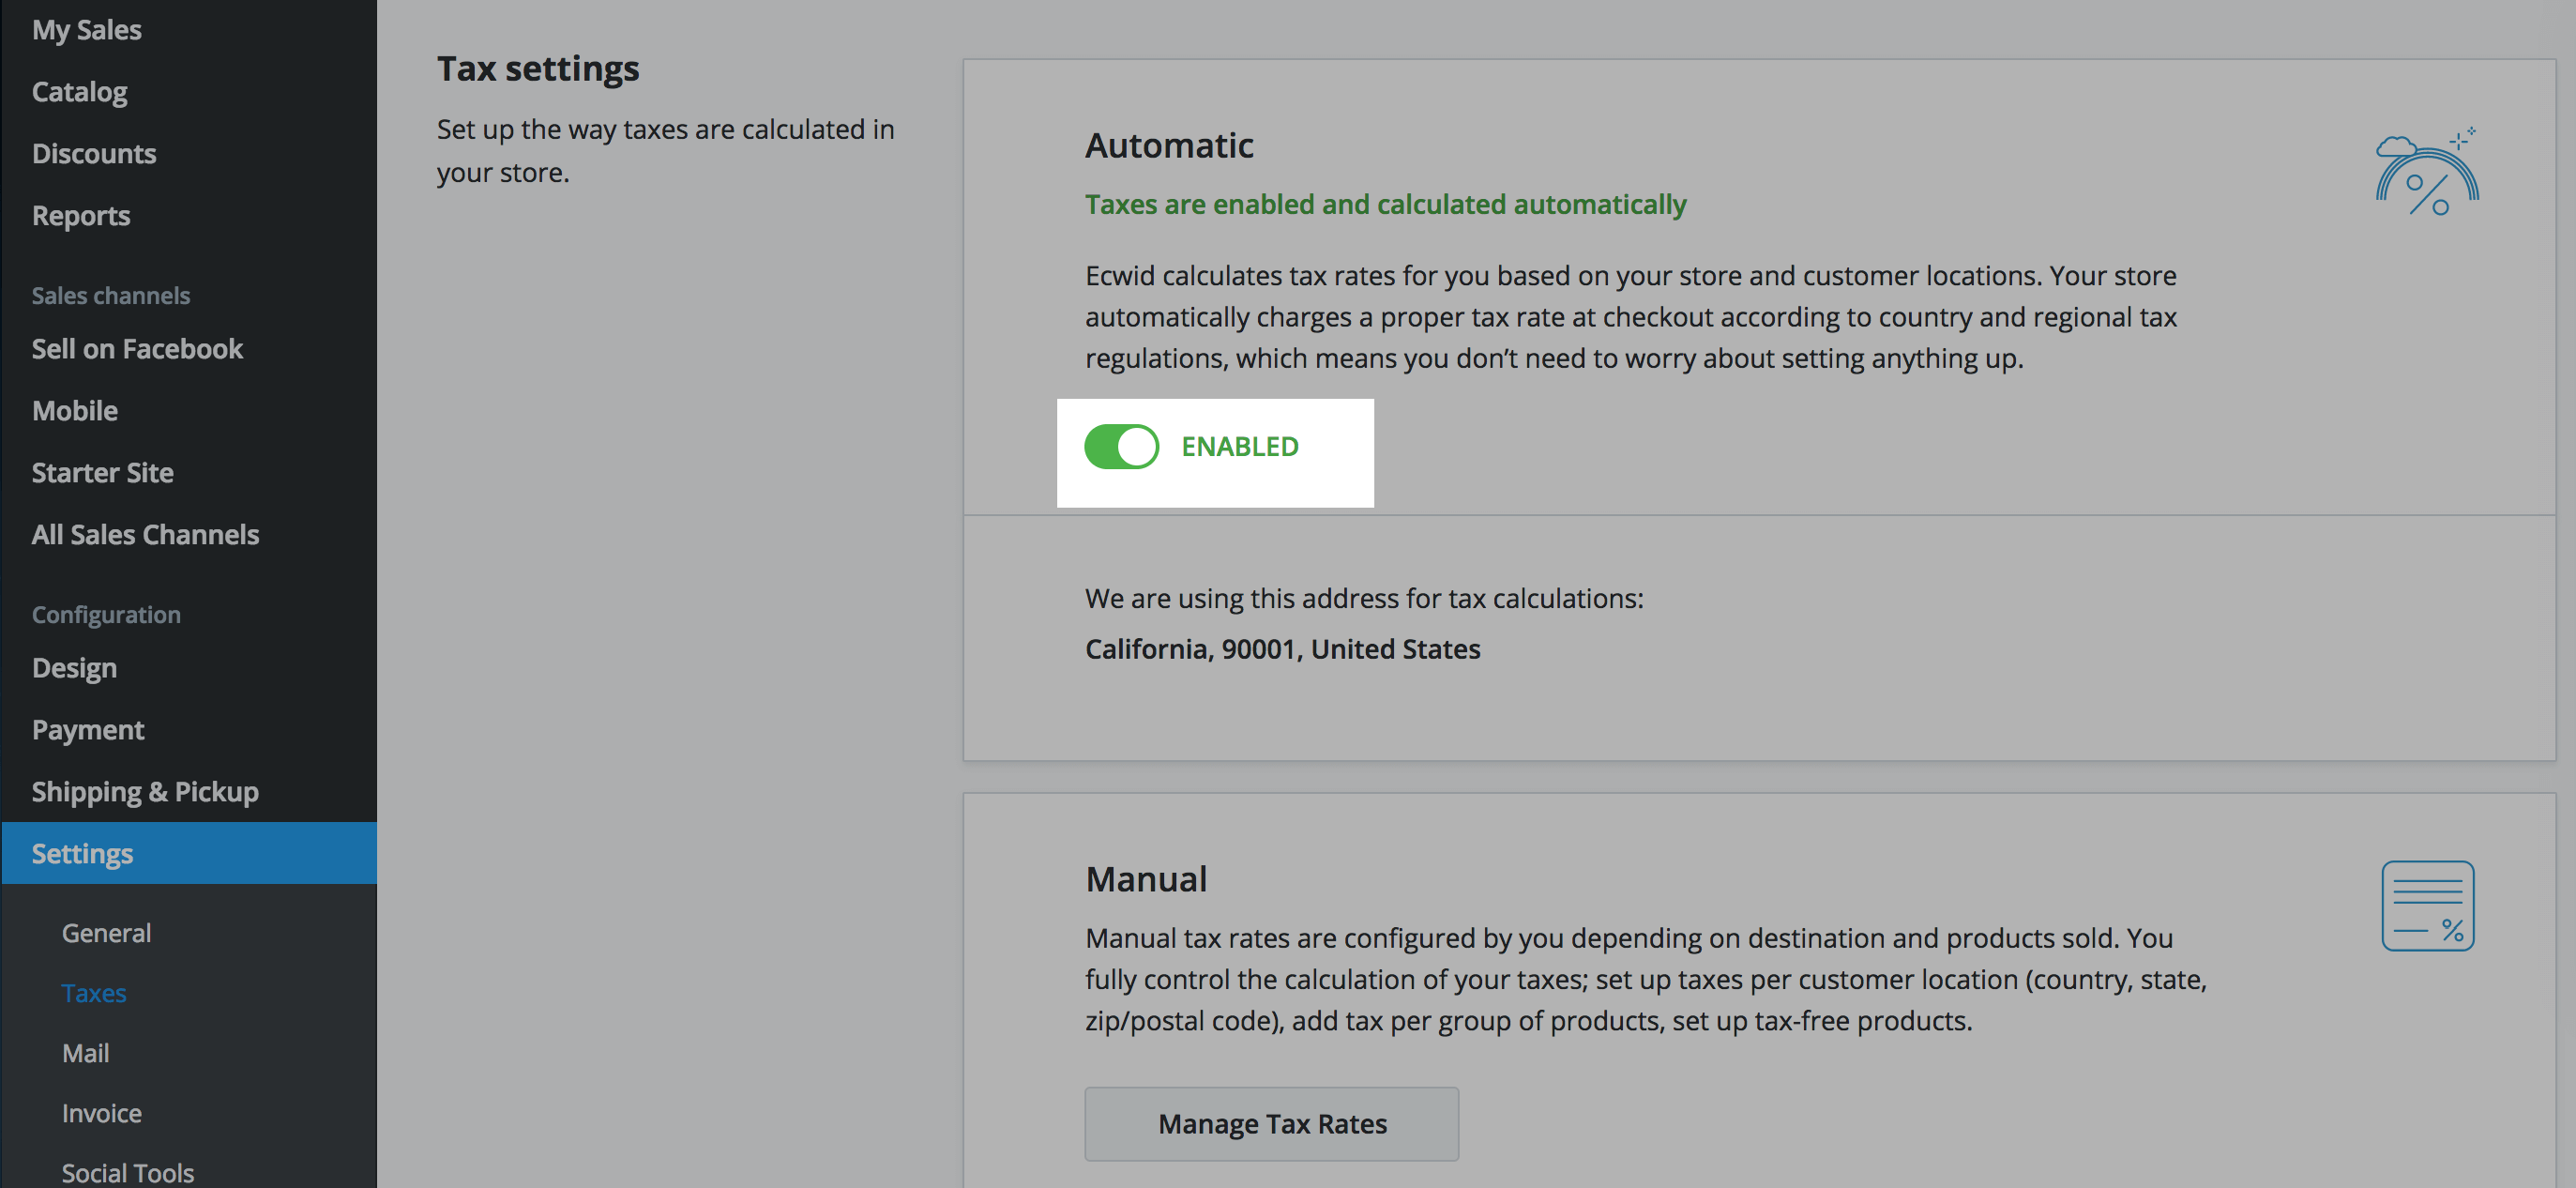 Enable automatic taxes calculation